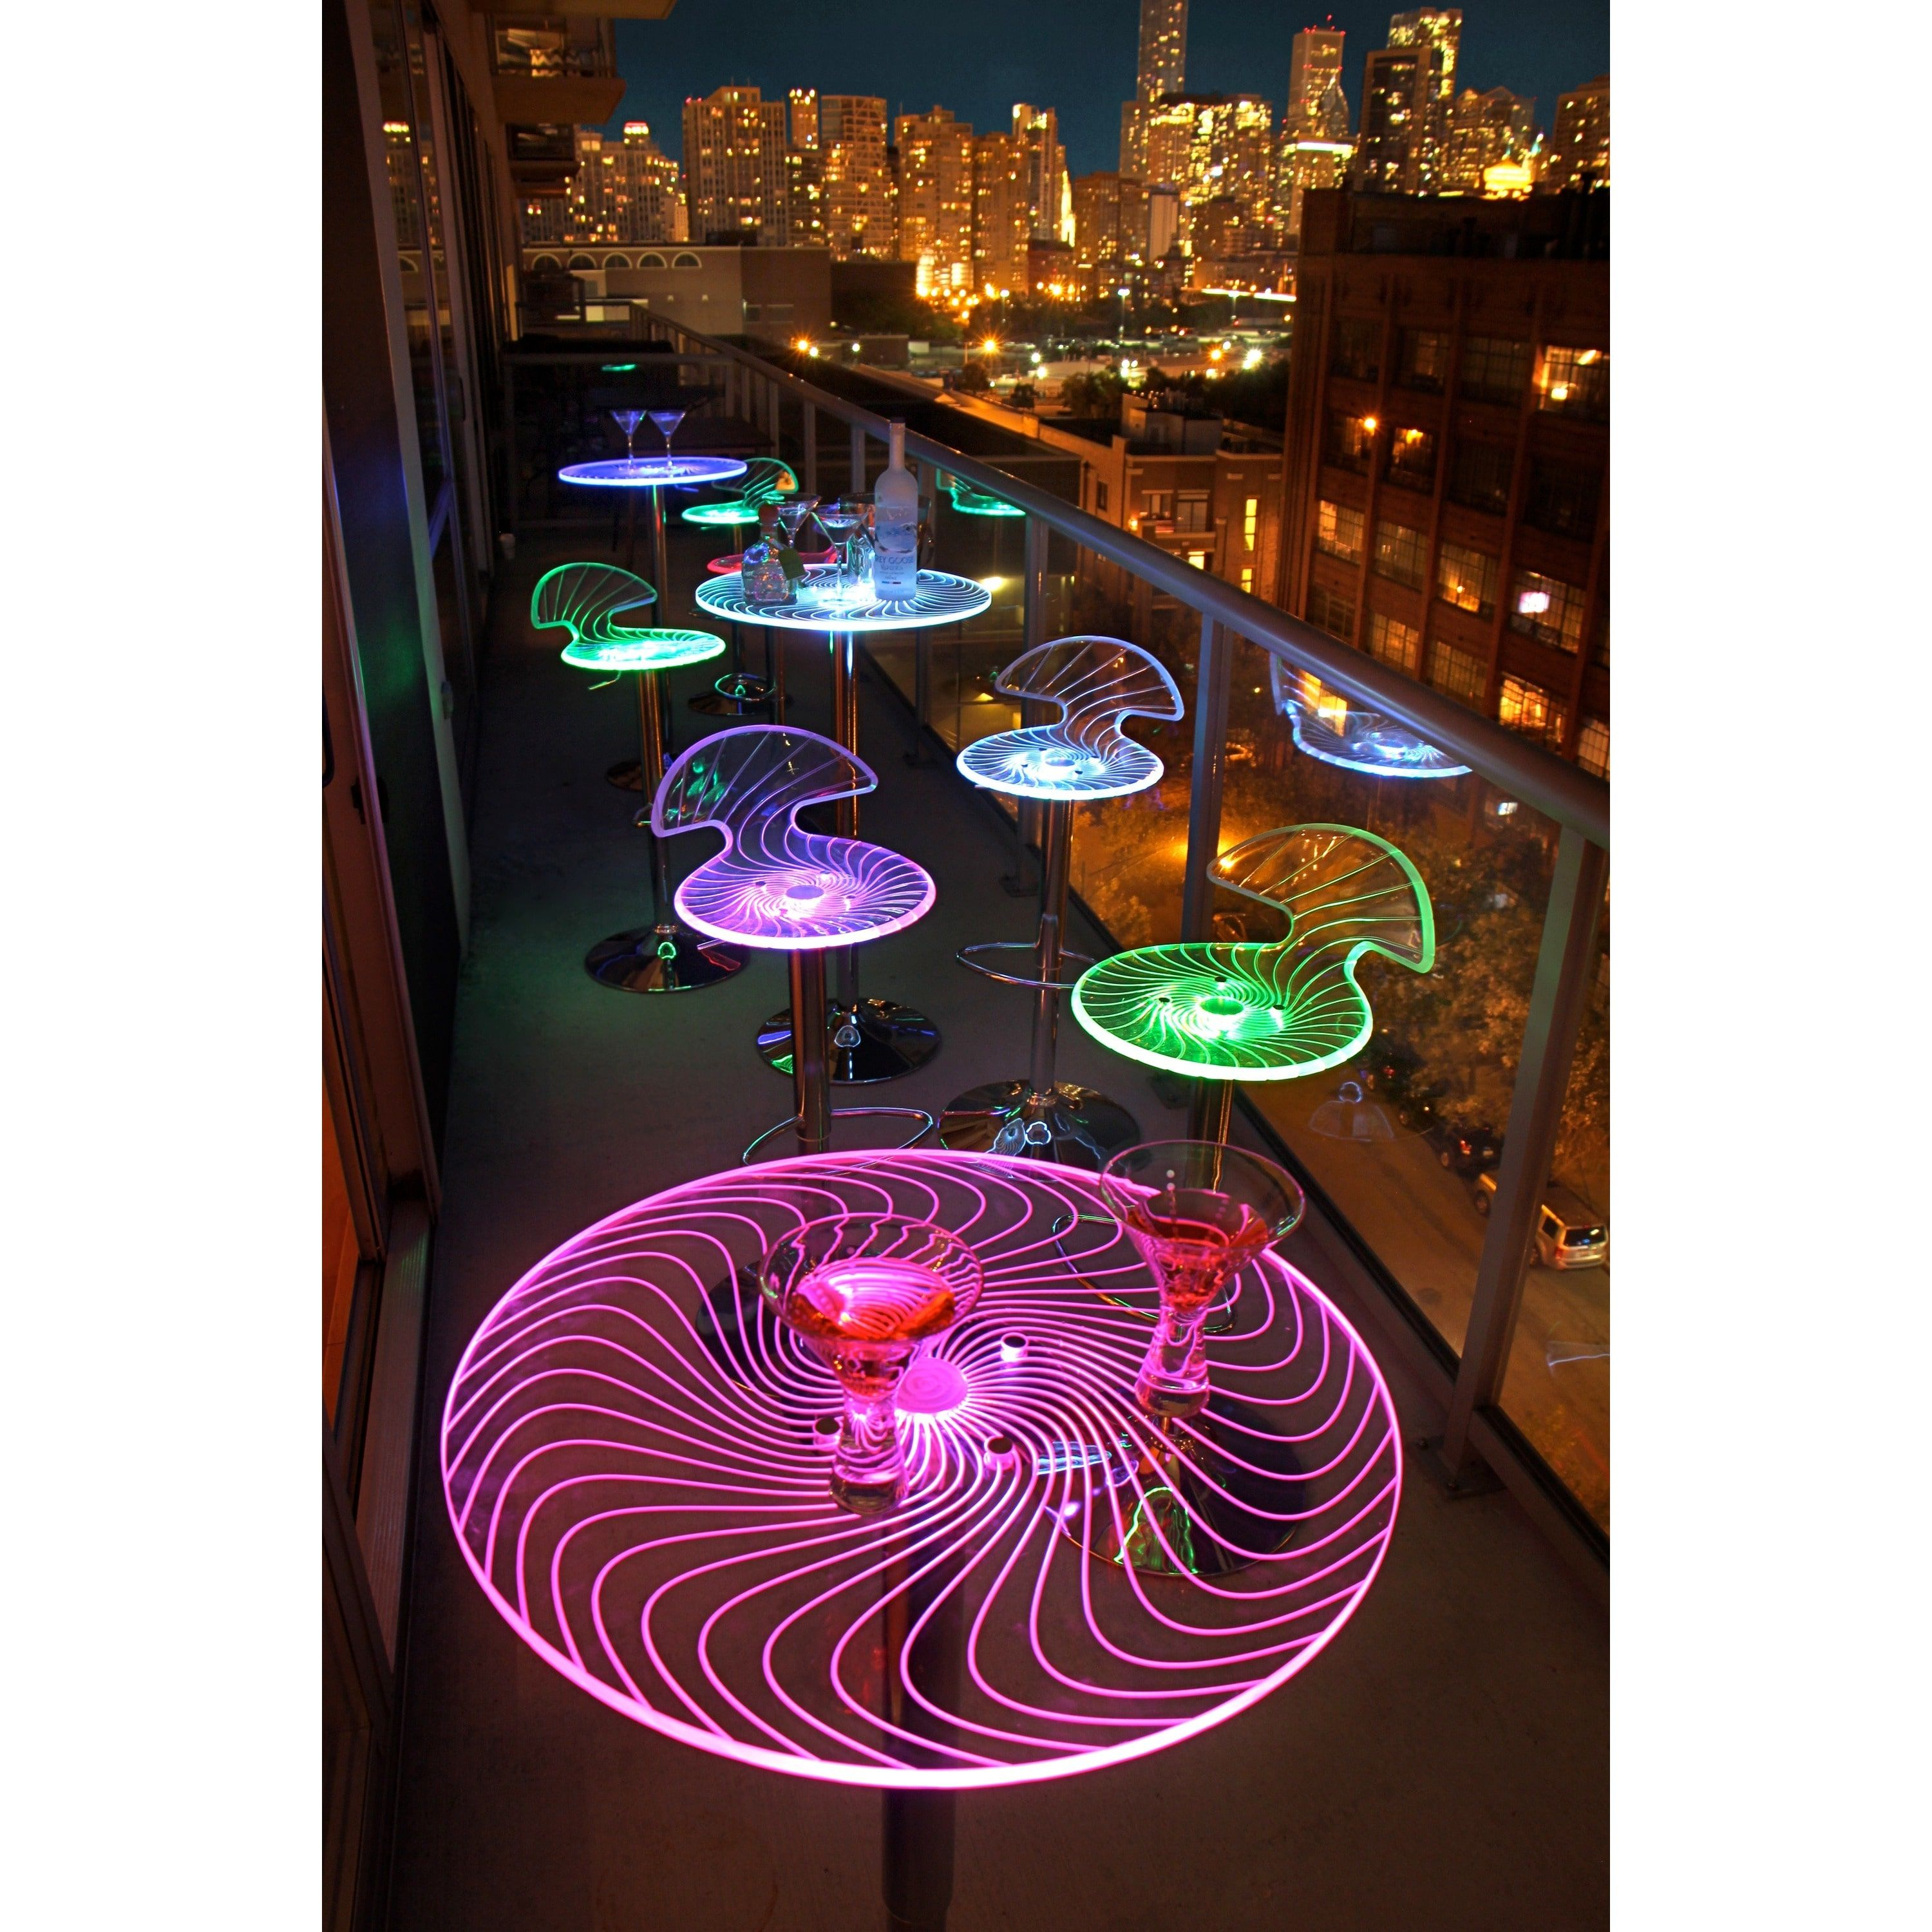 Lumisource spyra led light up bar table grey chrome bar tables spyra led light up bar table overstock shopping the best deals on bar tables aloadofball Gallery